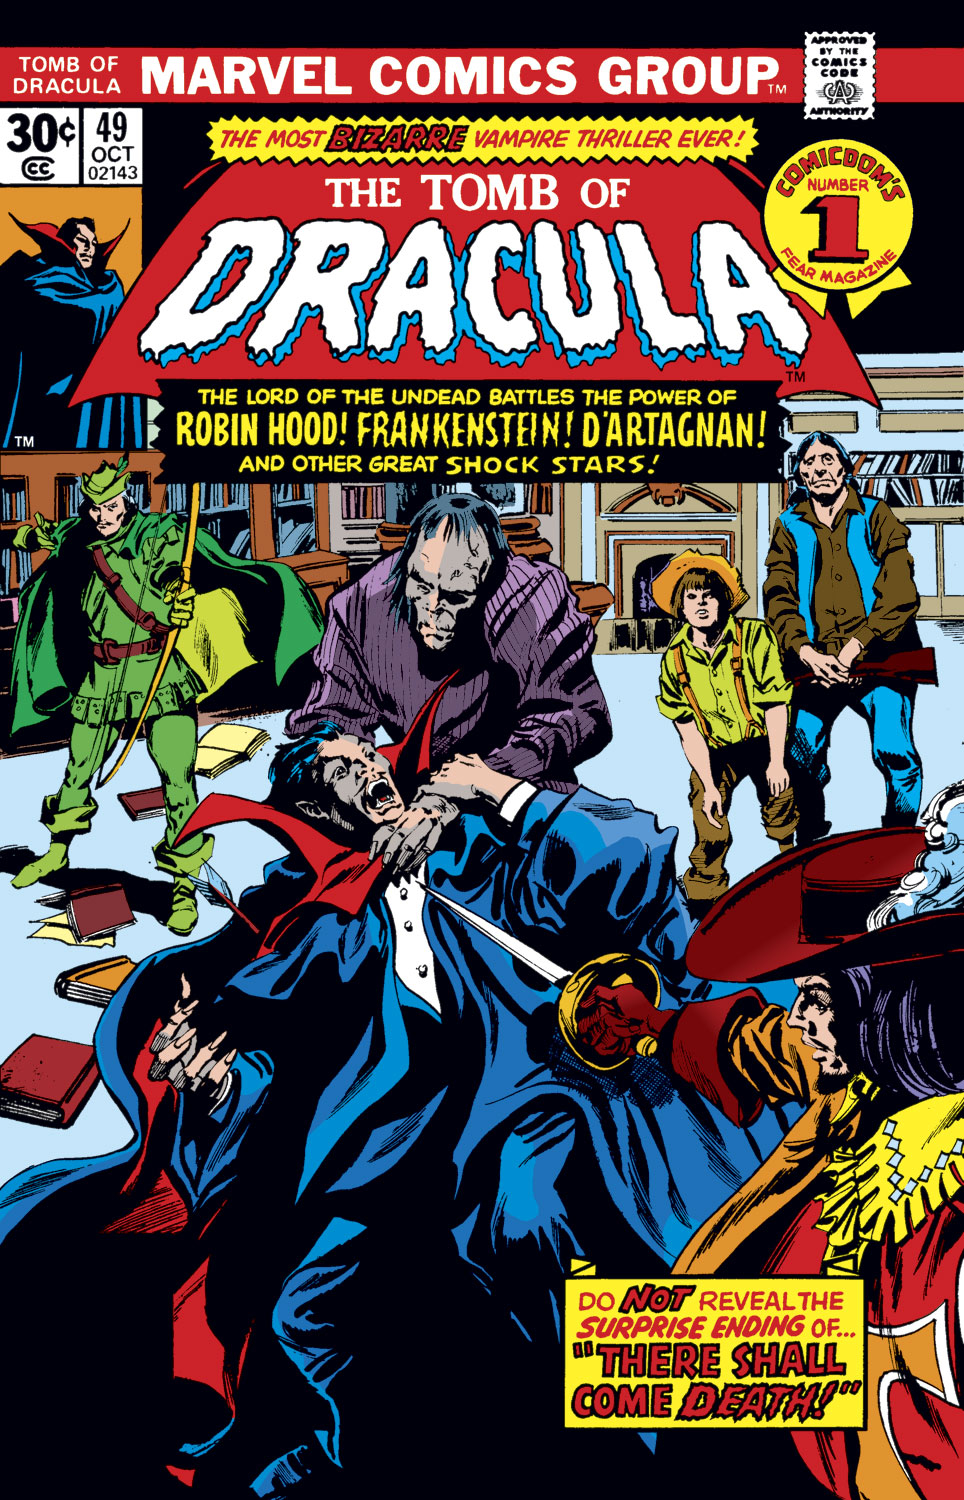 Tomb of Dracula (1972) issue 49 - Page 1